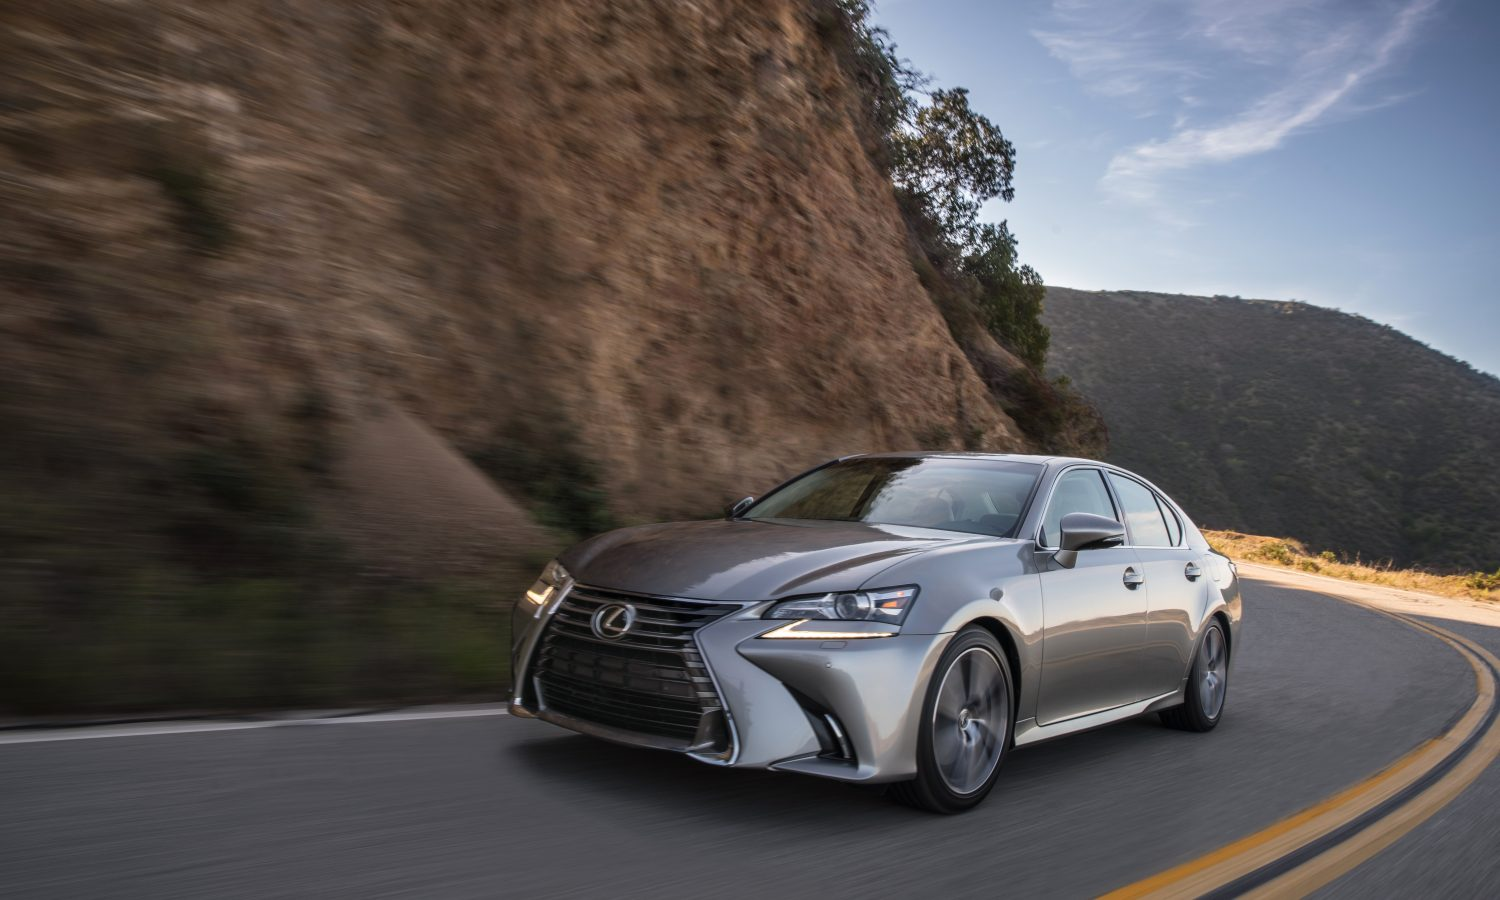 Mingling with the Classics: Lexus Introduces 2016 GS During Pebble Beach Concours Celebrations